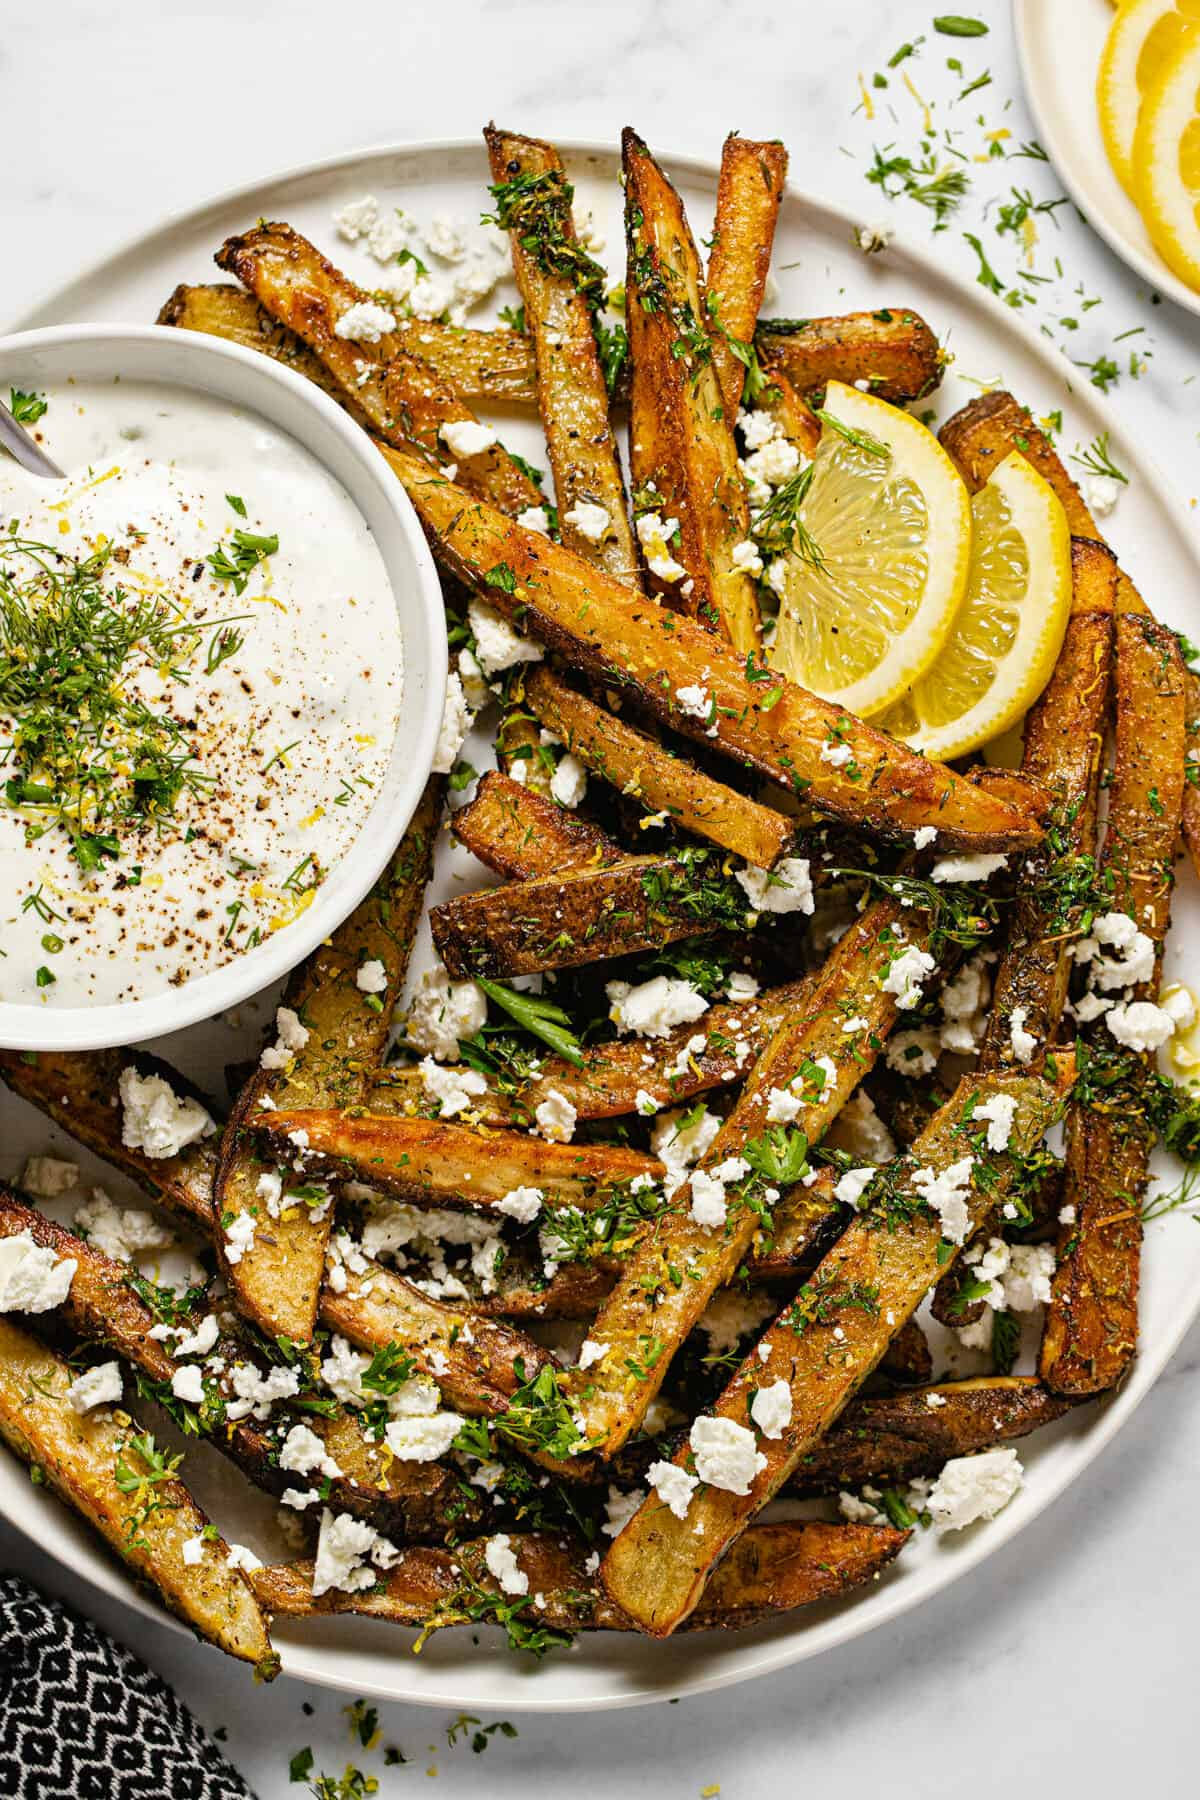 Large white plate filled with homemade Greek fries and a bowl of dill yogurt sauce